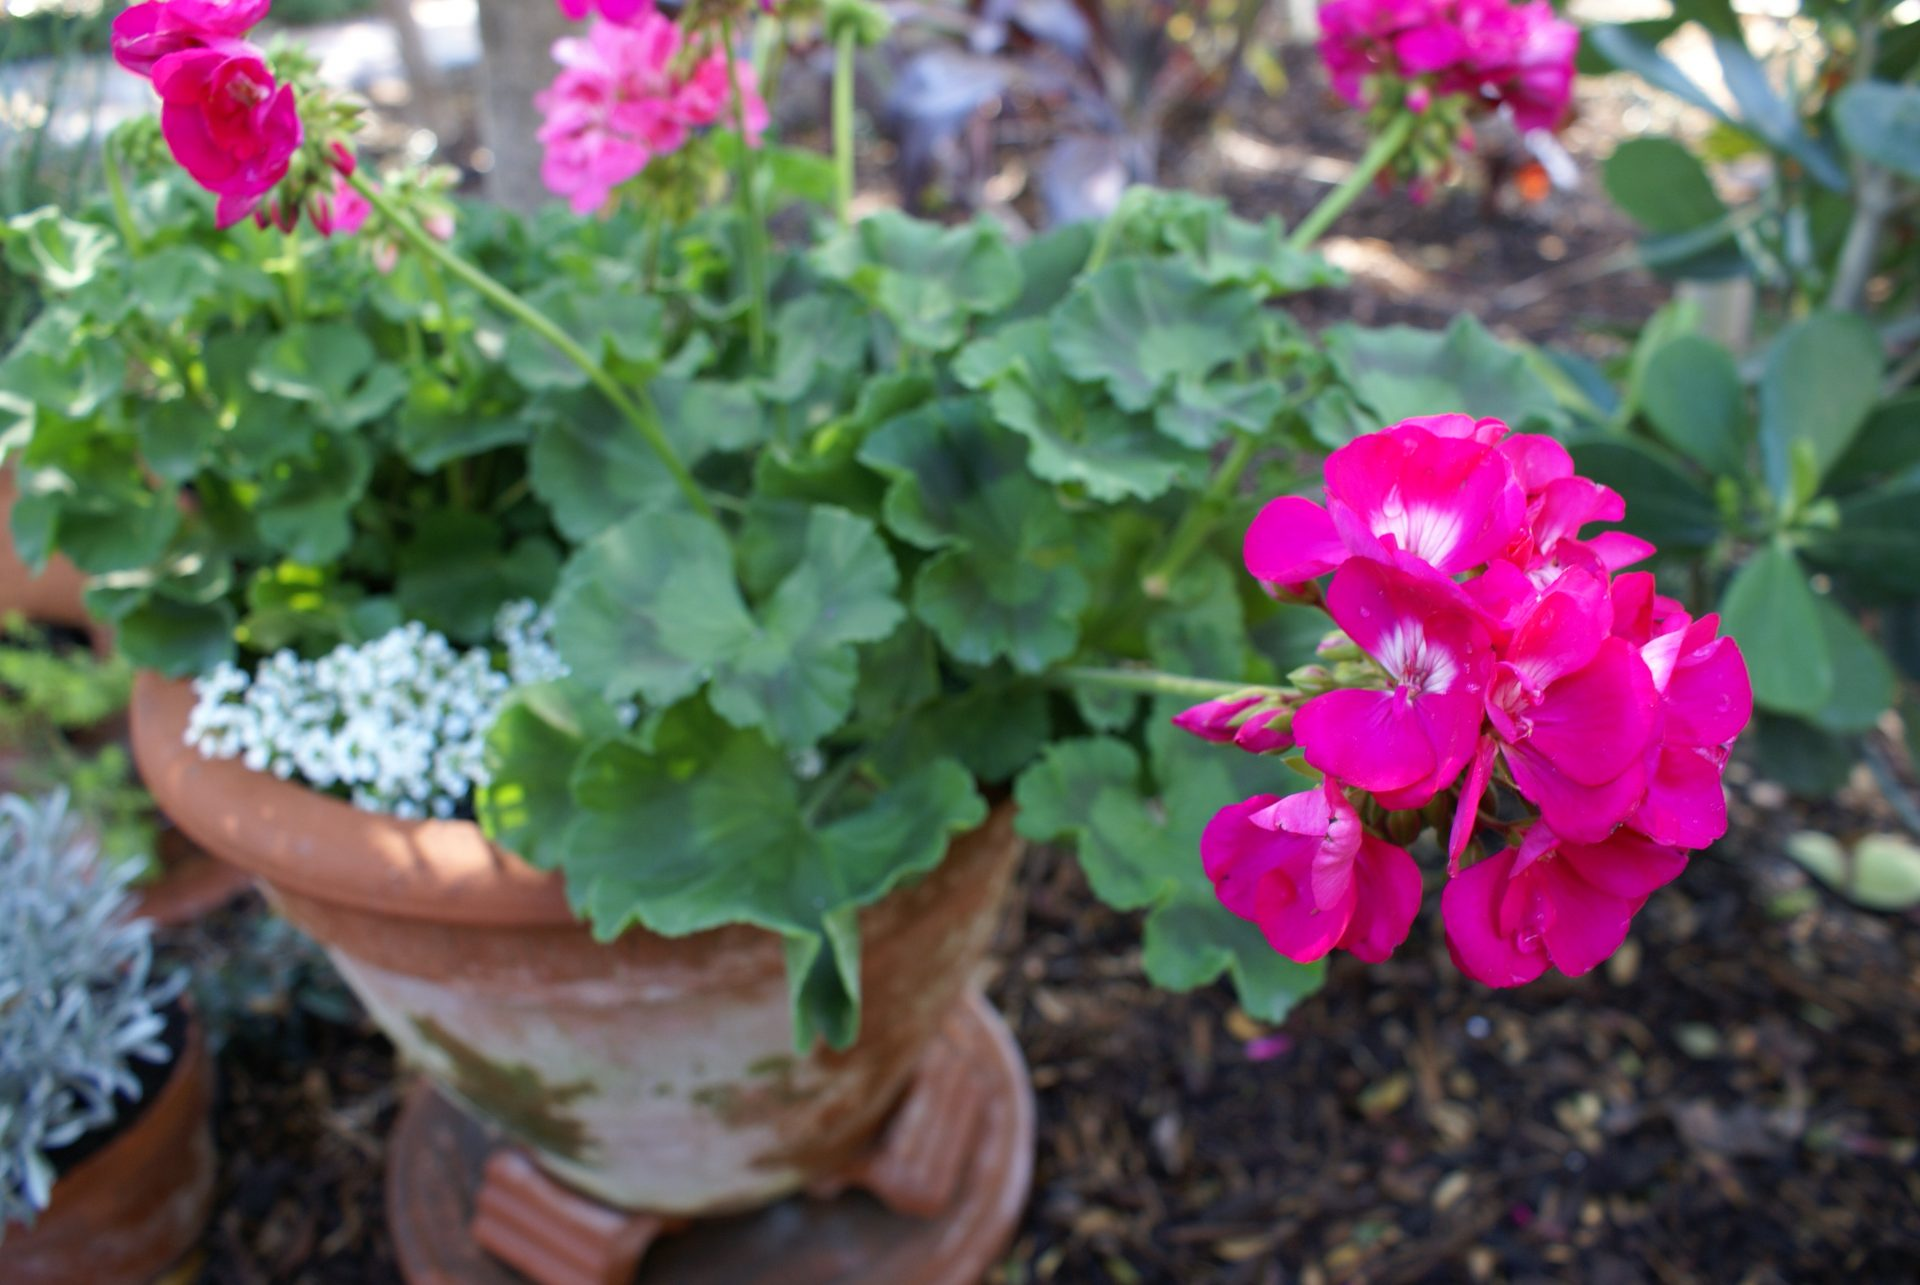 Geranium pink pelargonium spp michael a gilkey inc the geranium is one of our favorite annual flowers in cooler months the bright red and pink pops of color contrast splendidly with many other landscape izmirmasajfo